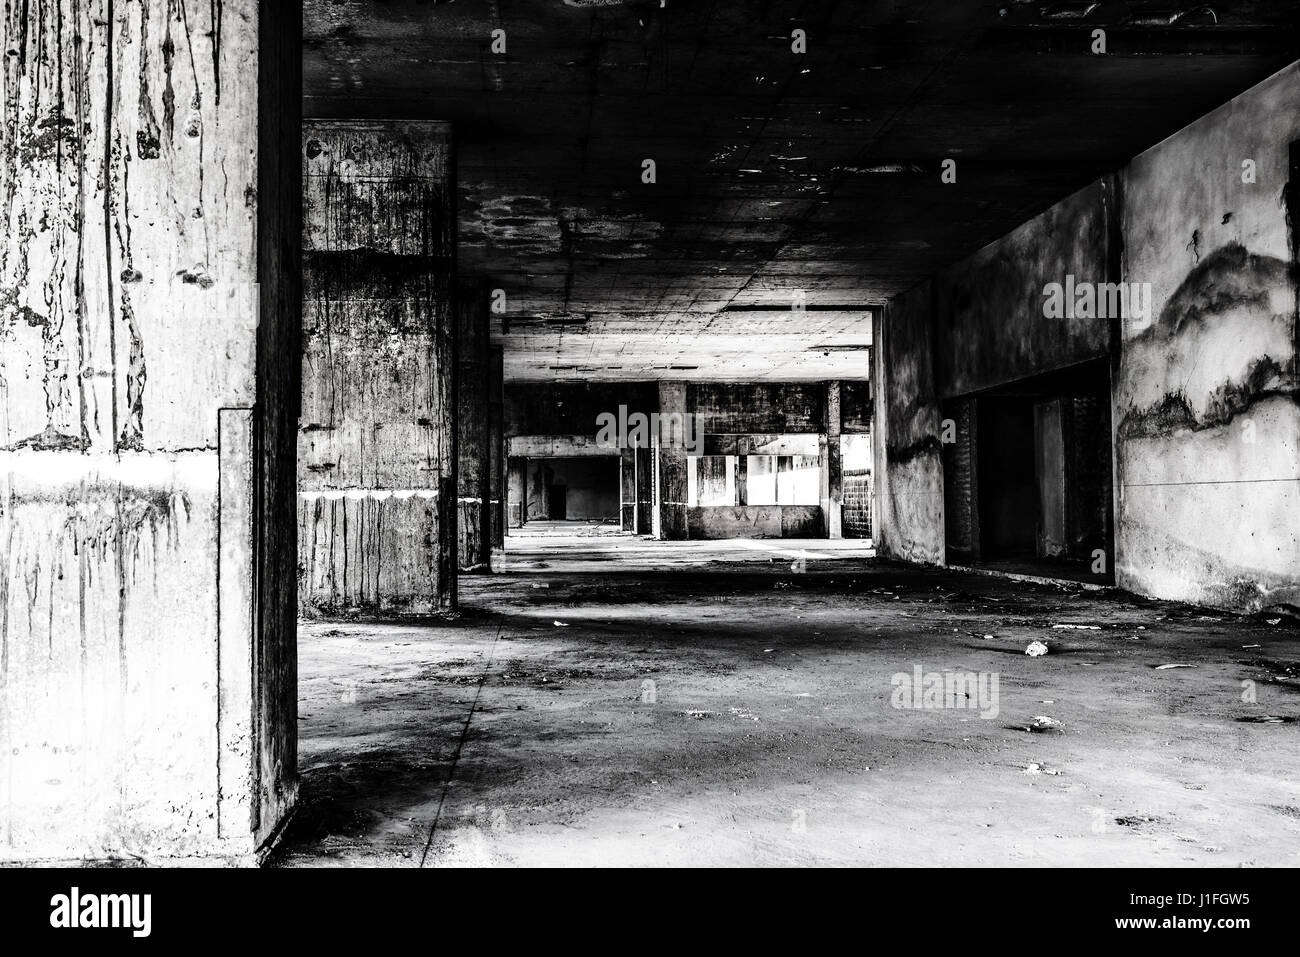 Abandoned building ghost living place, darkness creepy and horror background concept - Stock Image